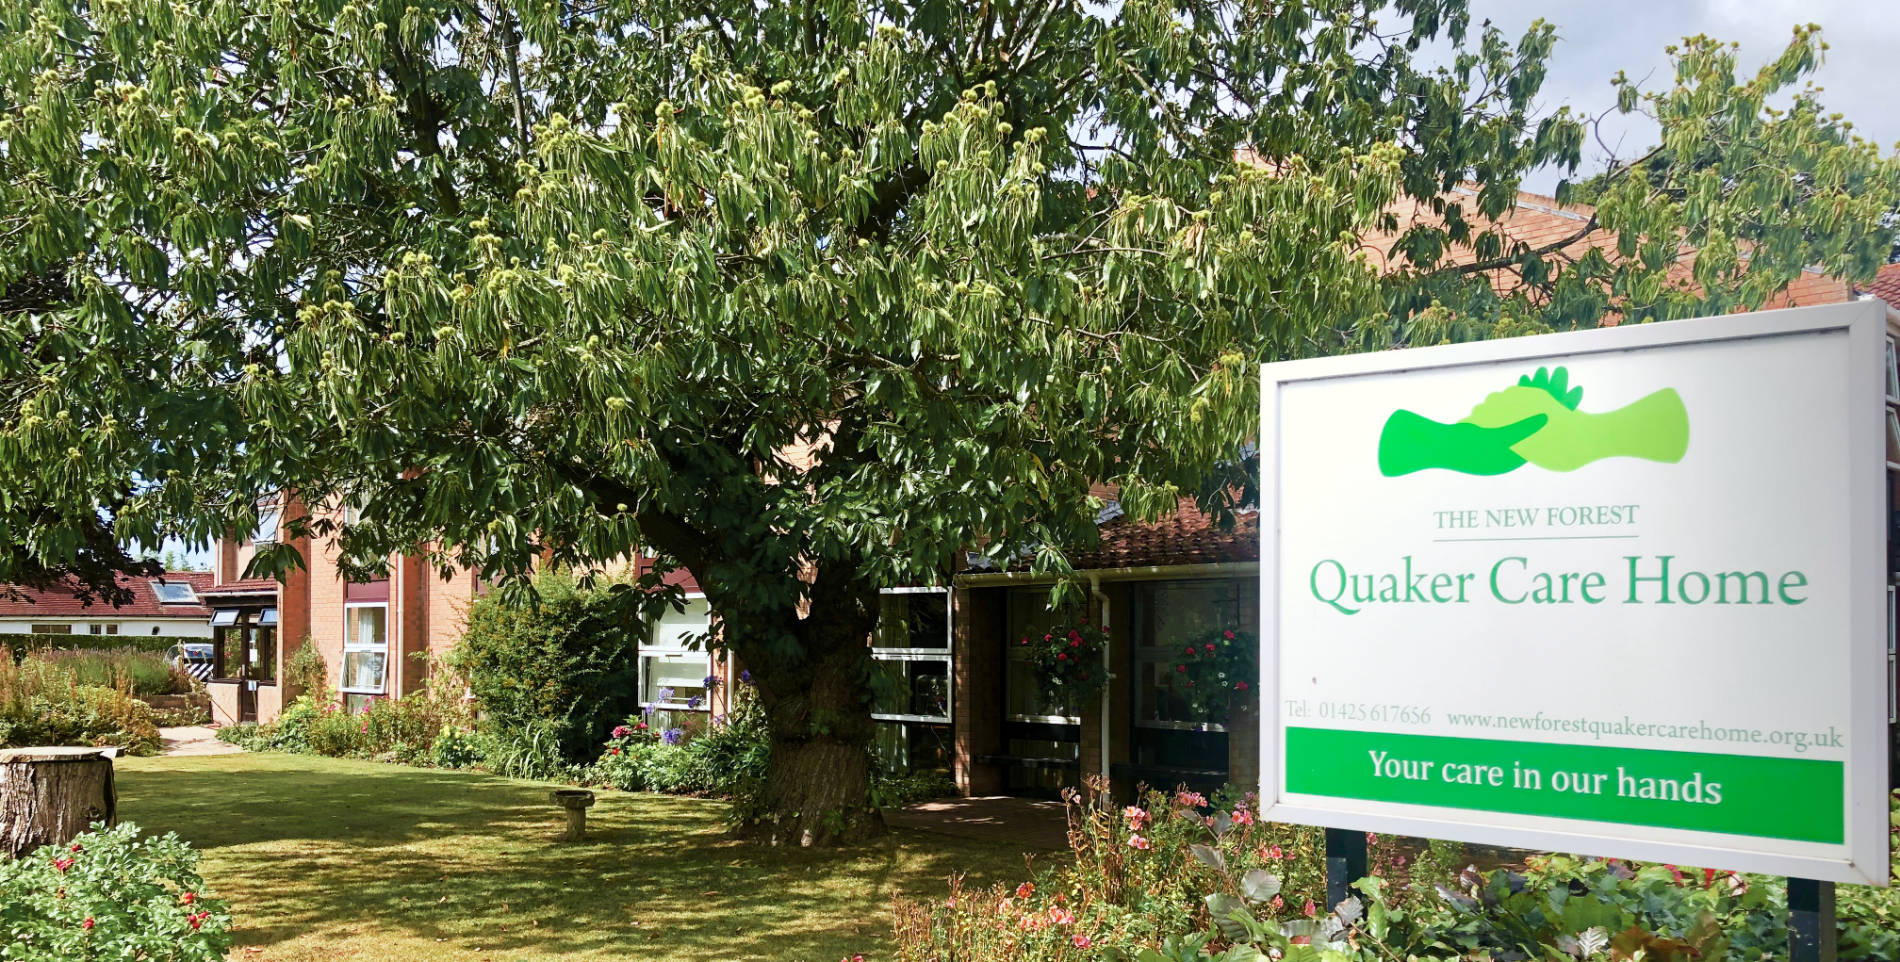 New Forest Quaker Care Home offers residential care in New Milton, Hampshire